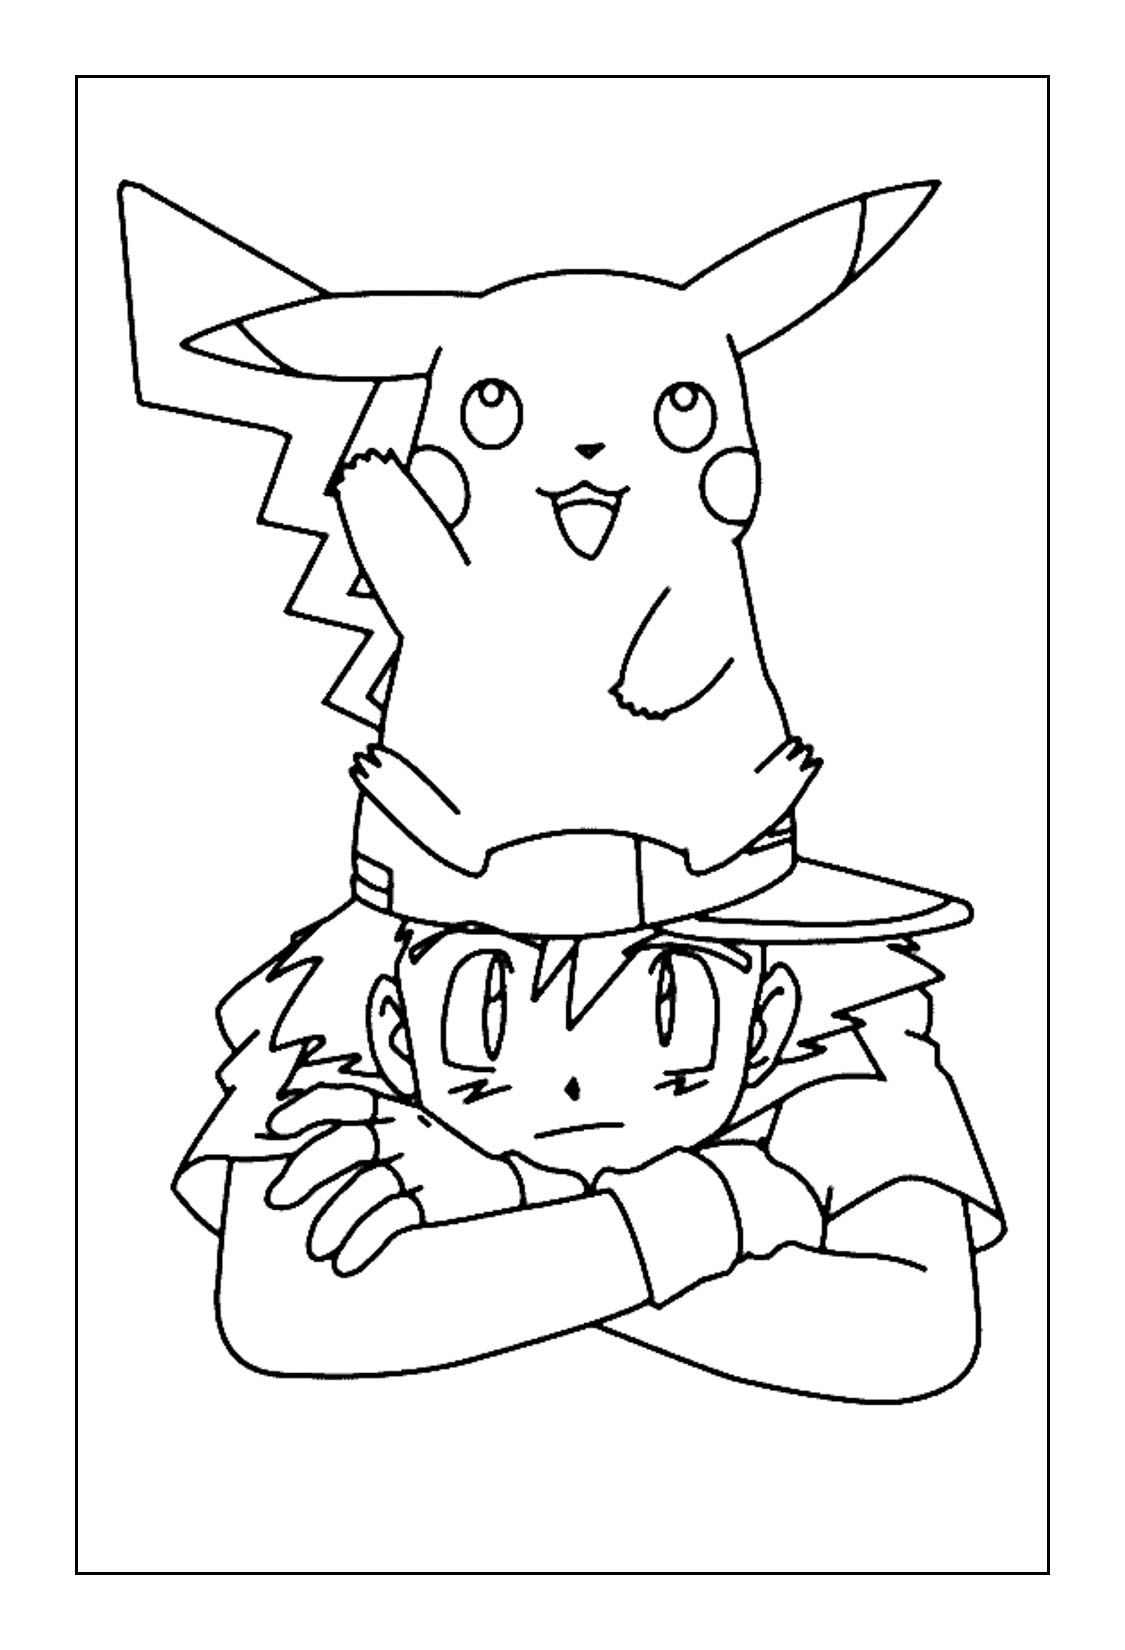 Ash and Pikachu Coloring Pages Pikachu coloring page